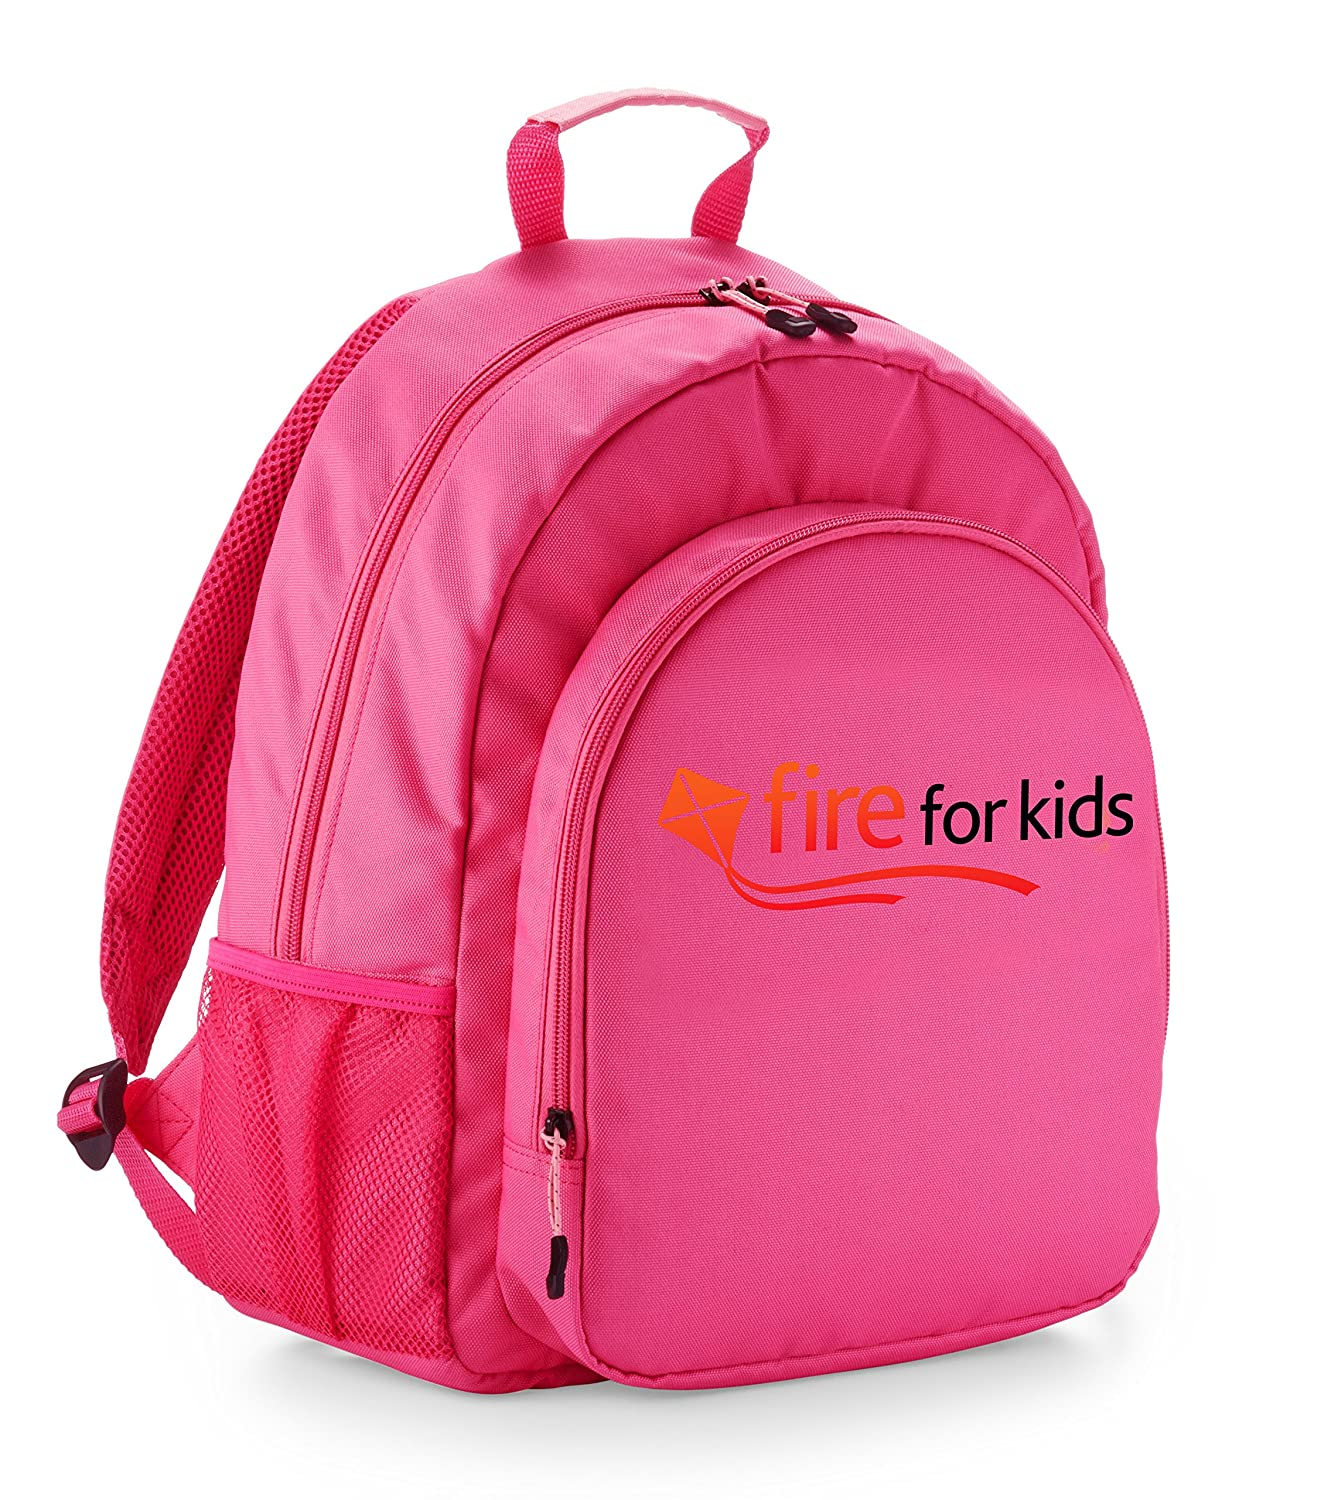 fire for kids backpack pink amazon co uk kindle store